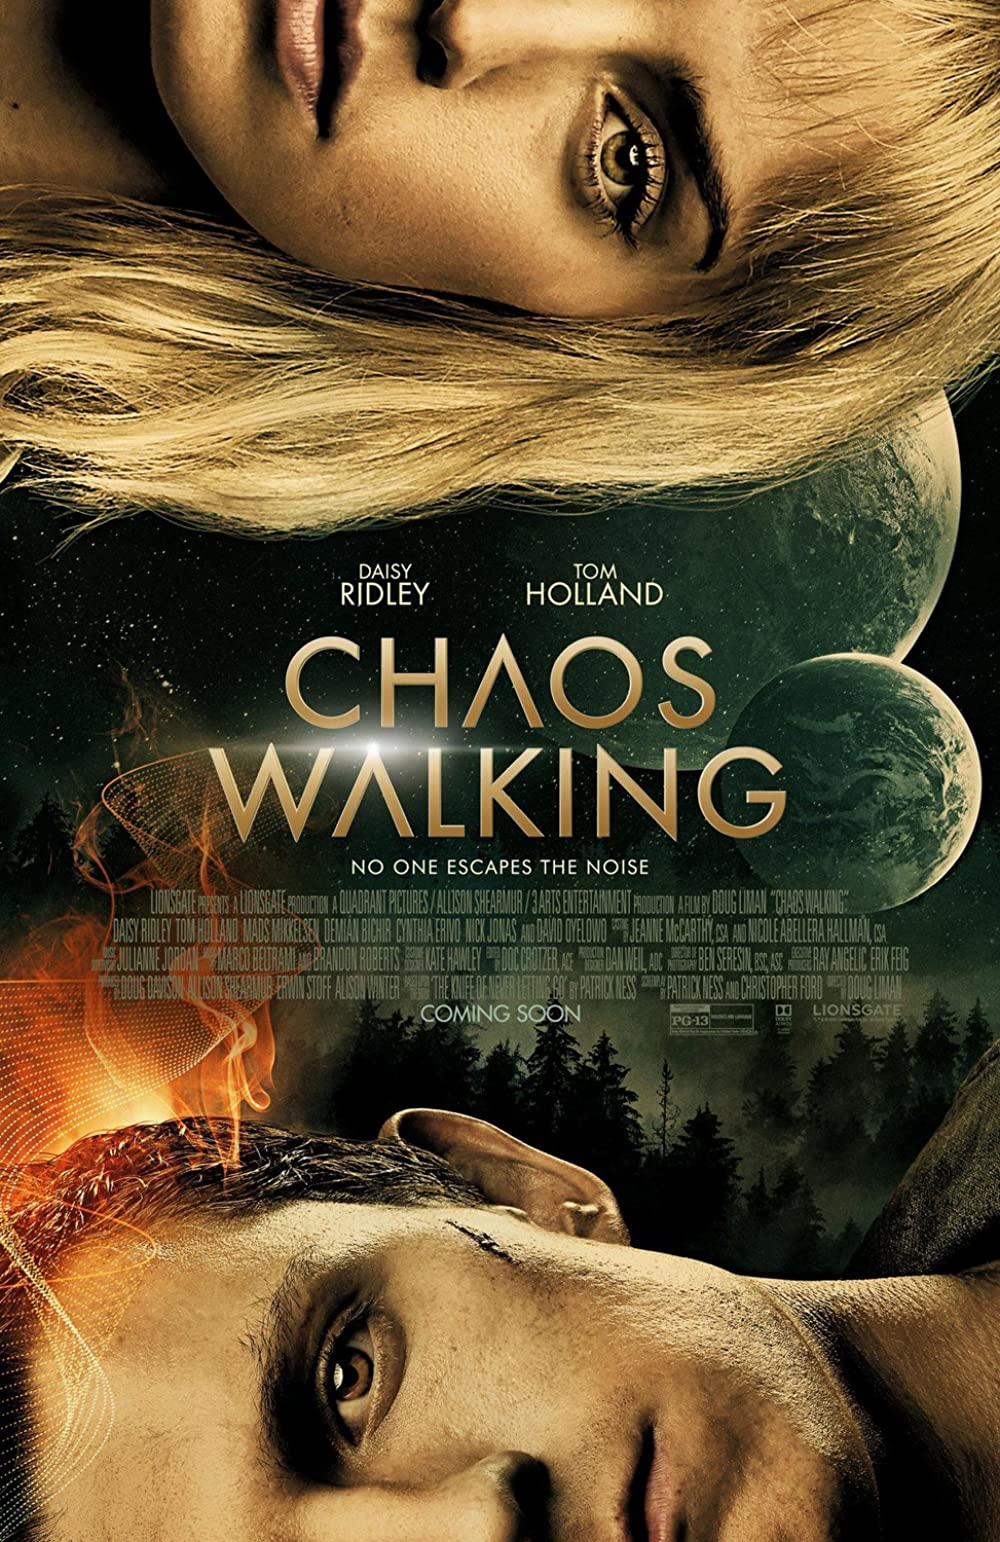 Chaos Walking (2021) English Full Movie HDCam